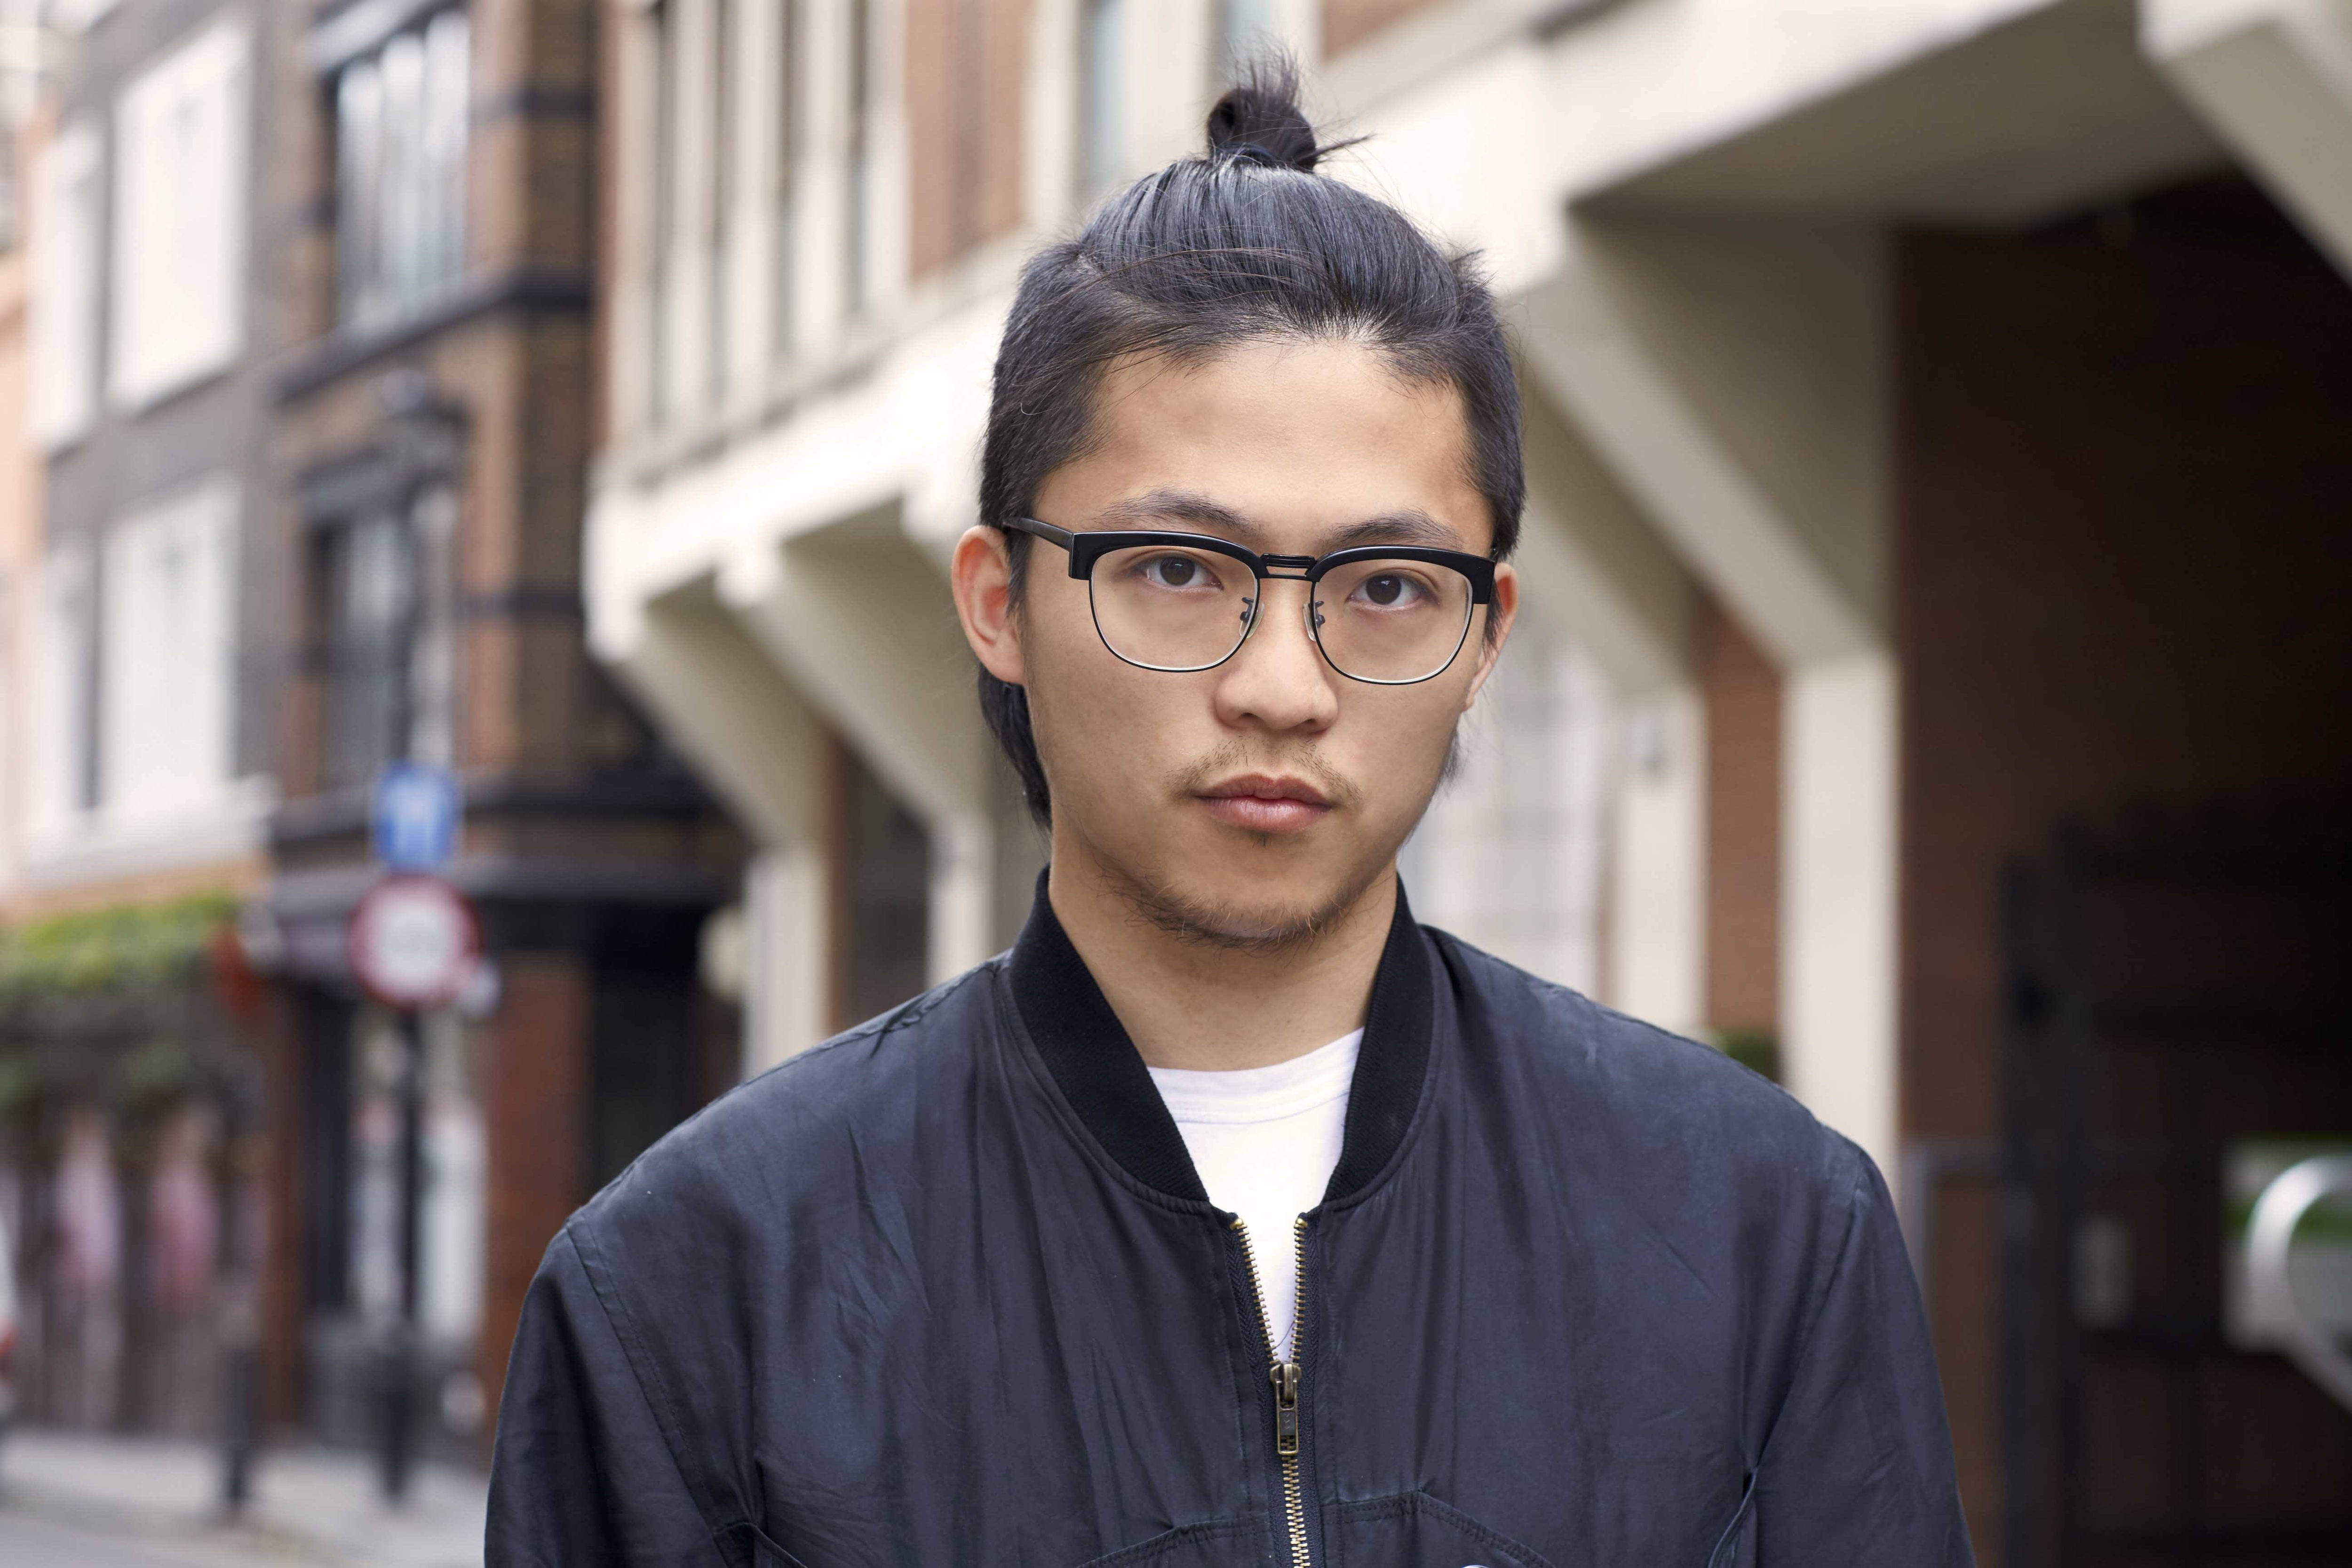 Asian Men Hair Styles: The Korean Men's Hairstyles You'll Want To Copy Now